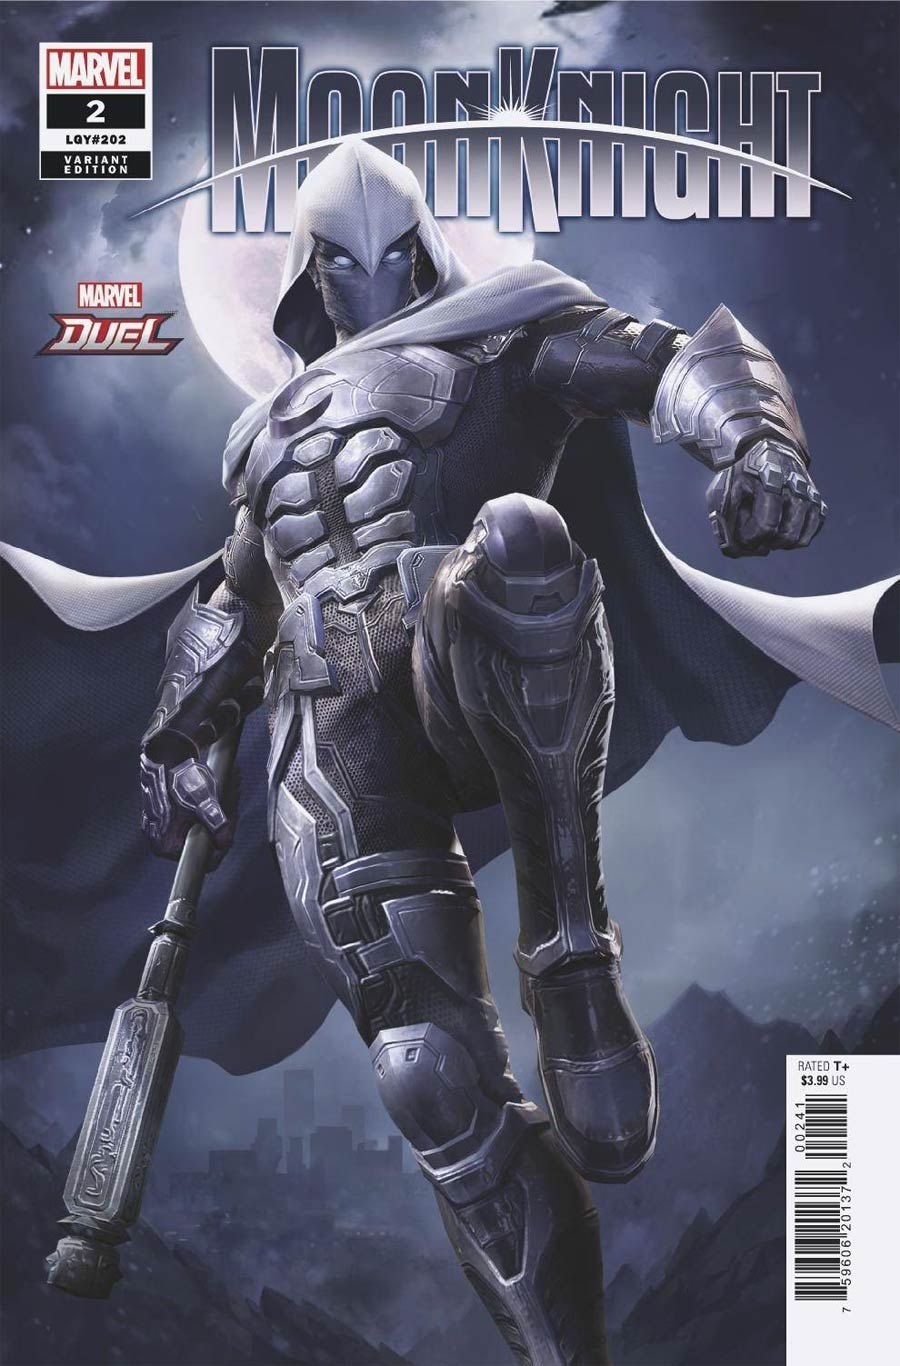 Moon Knight Vol 9 #2 Cover B Variant NetEase Marvel Games Cover (Limit 1 Per Customer)